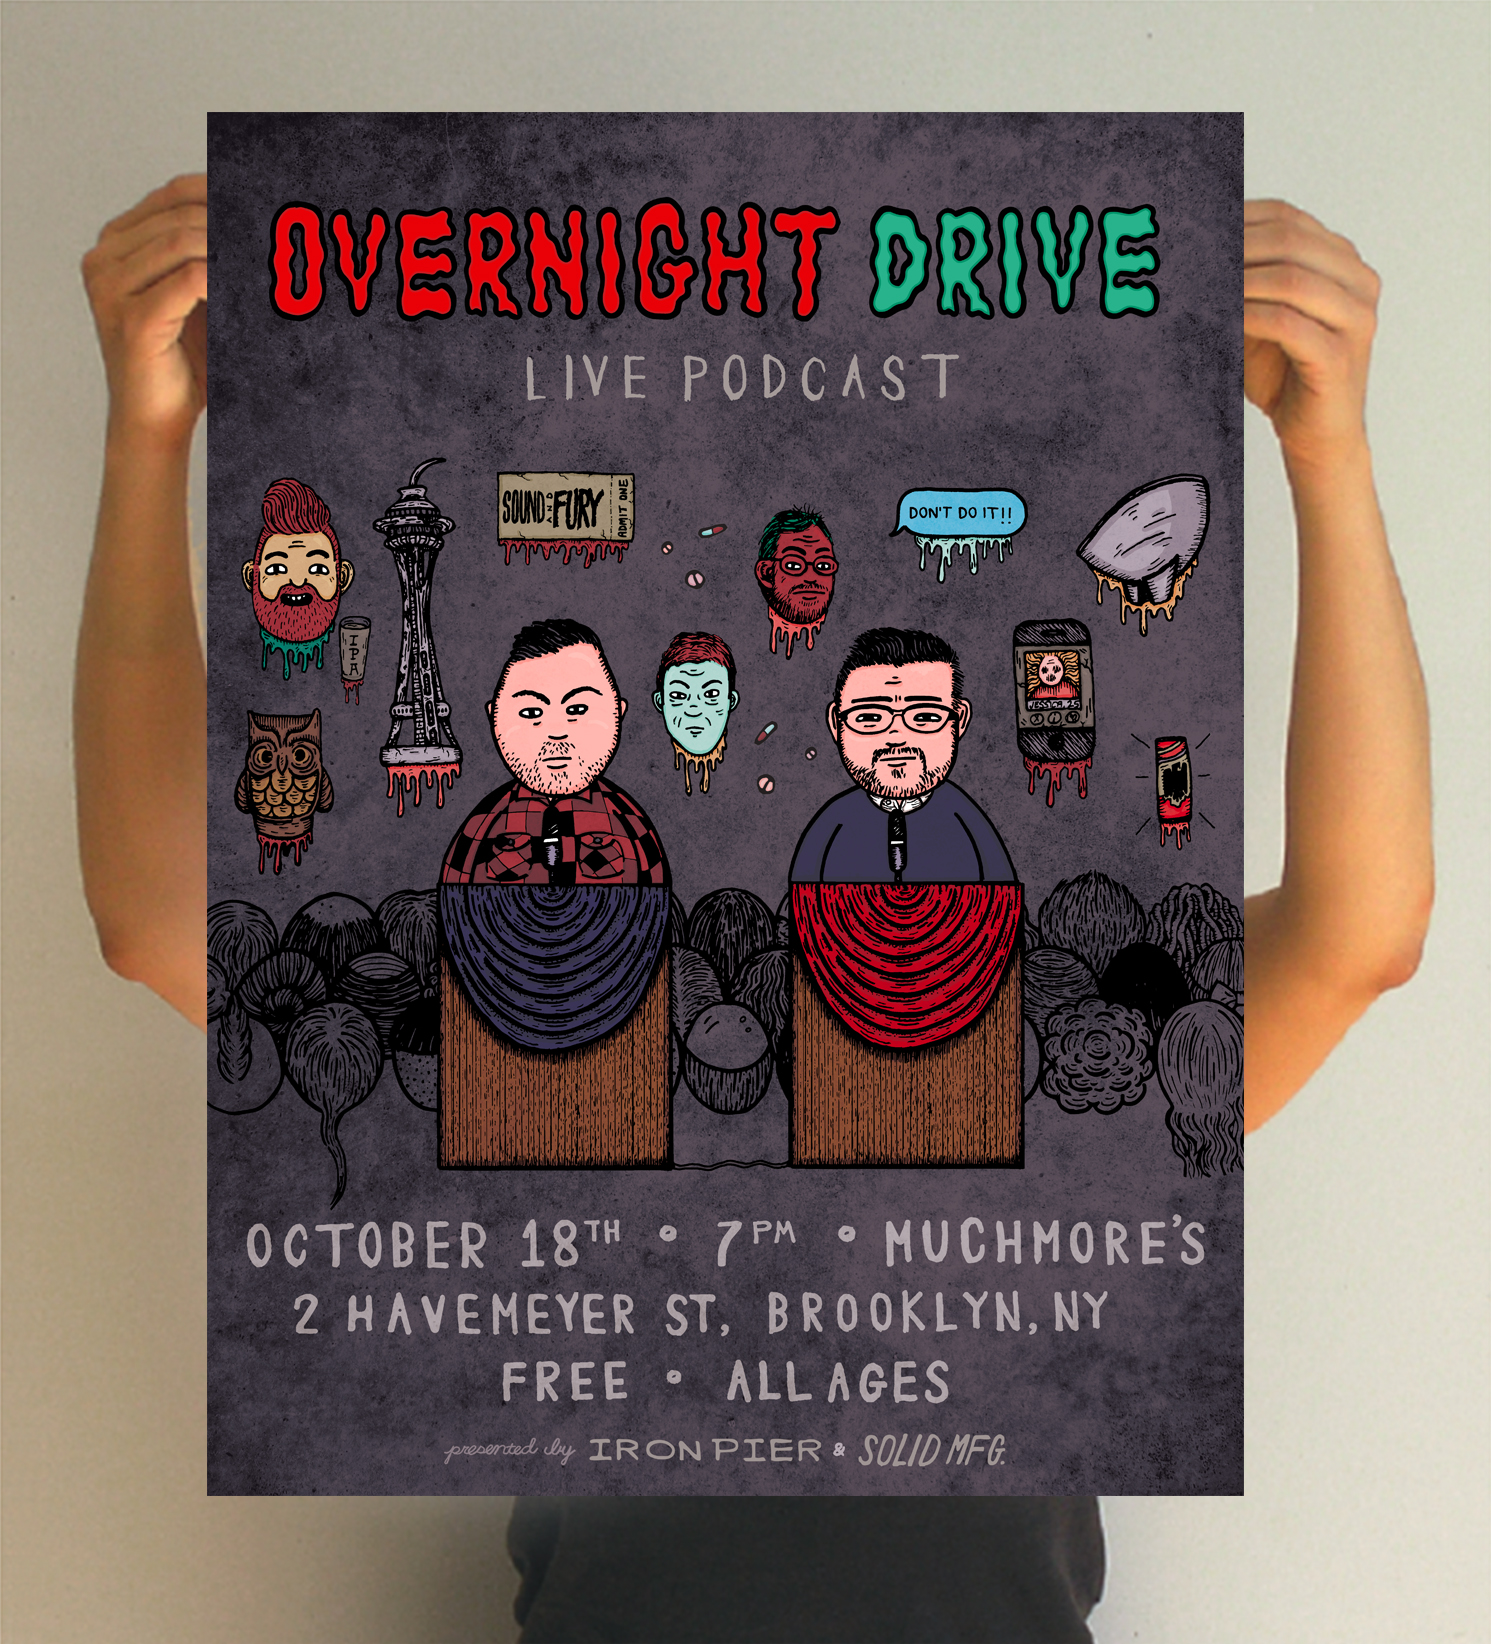 Overnight Drive Podcast - Merchandise